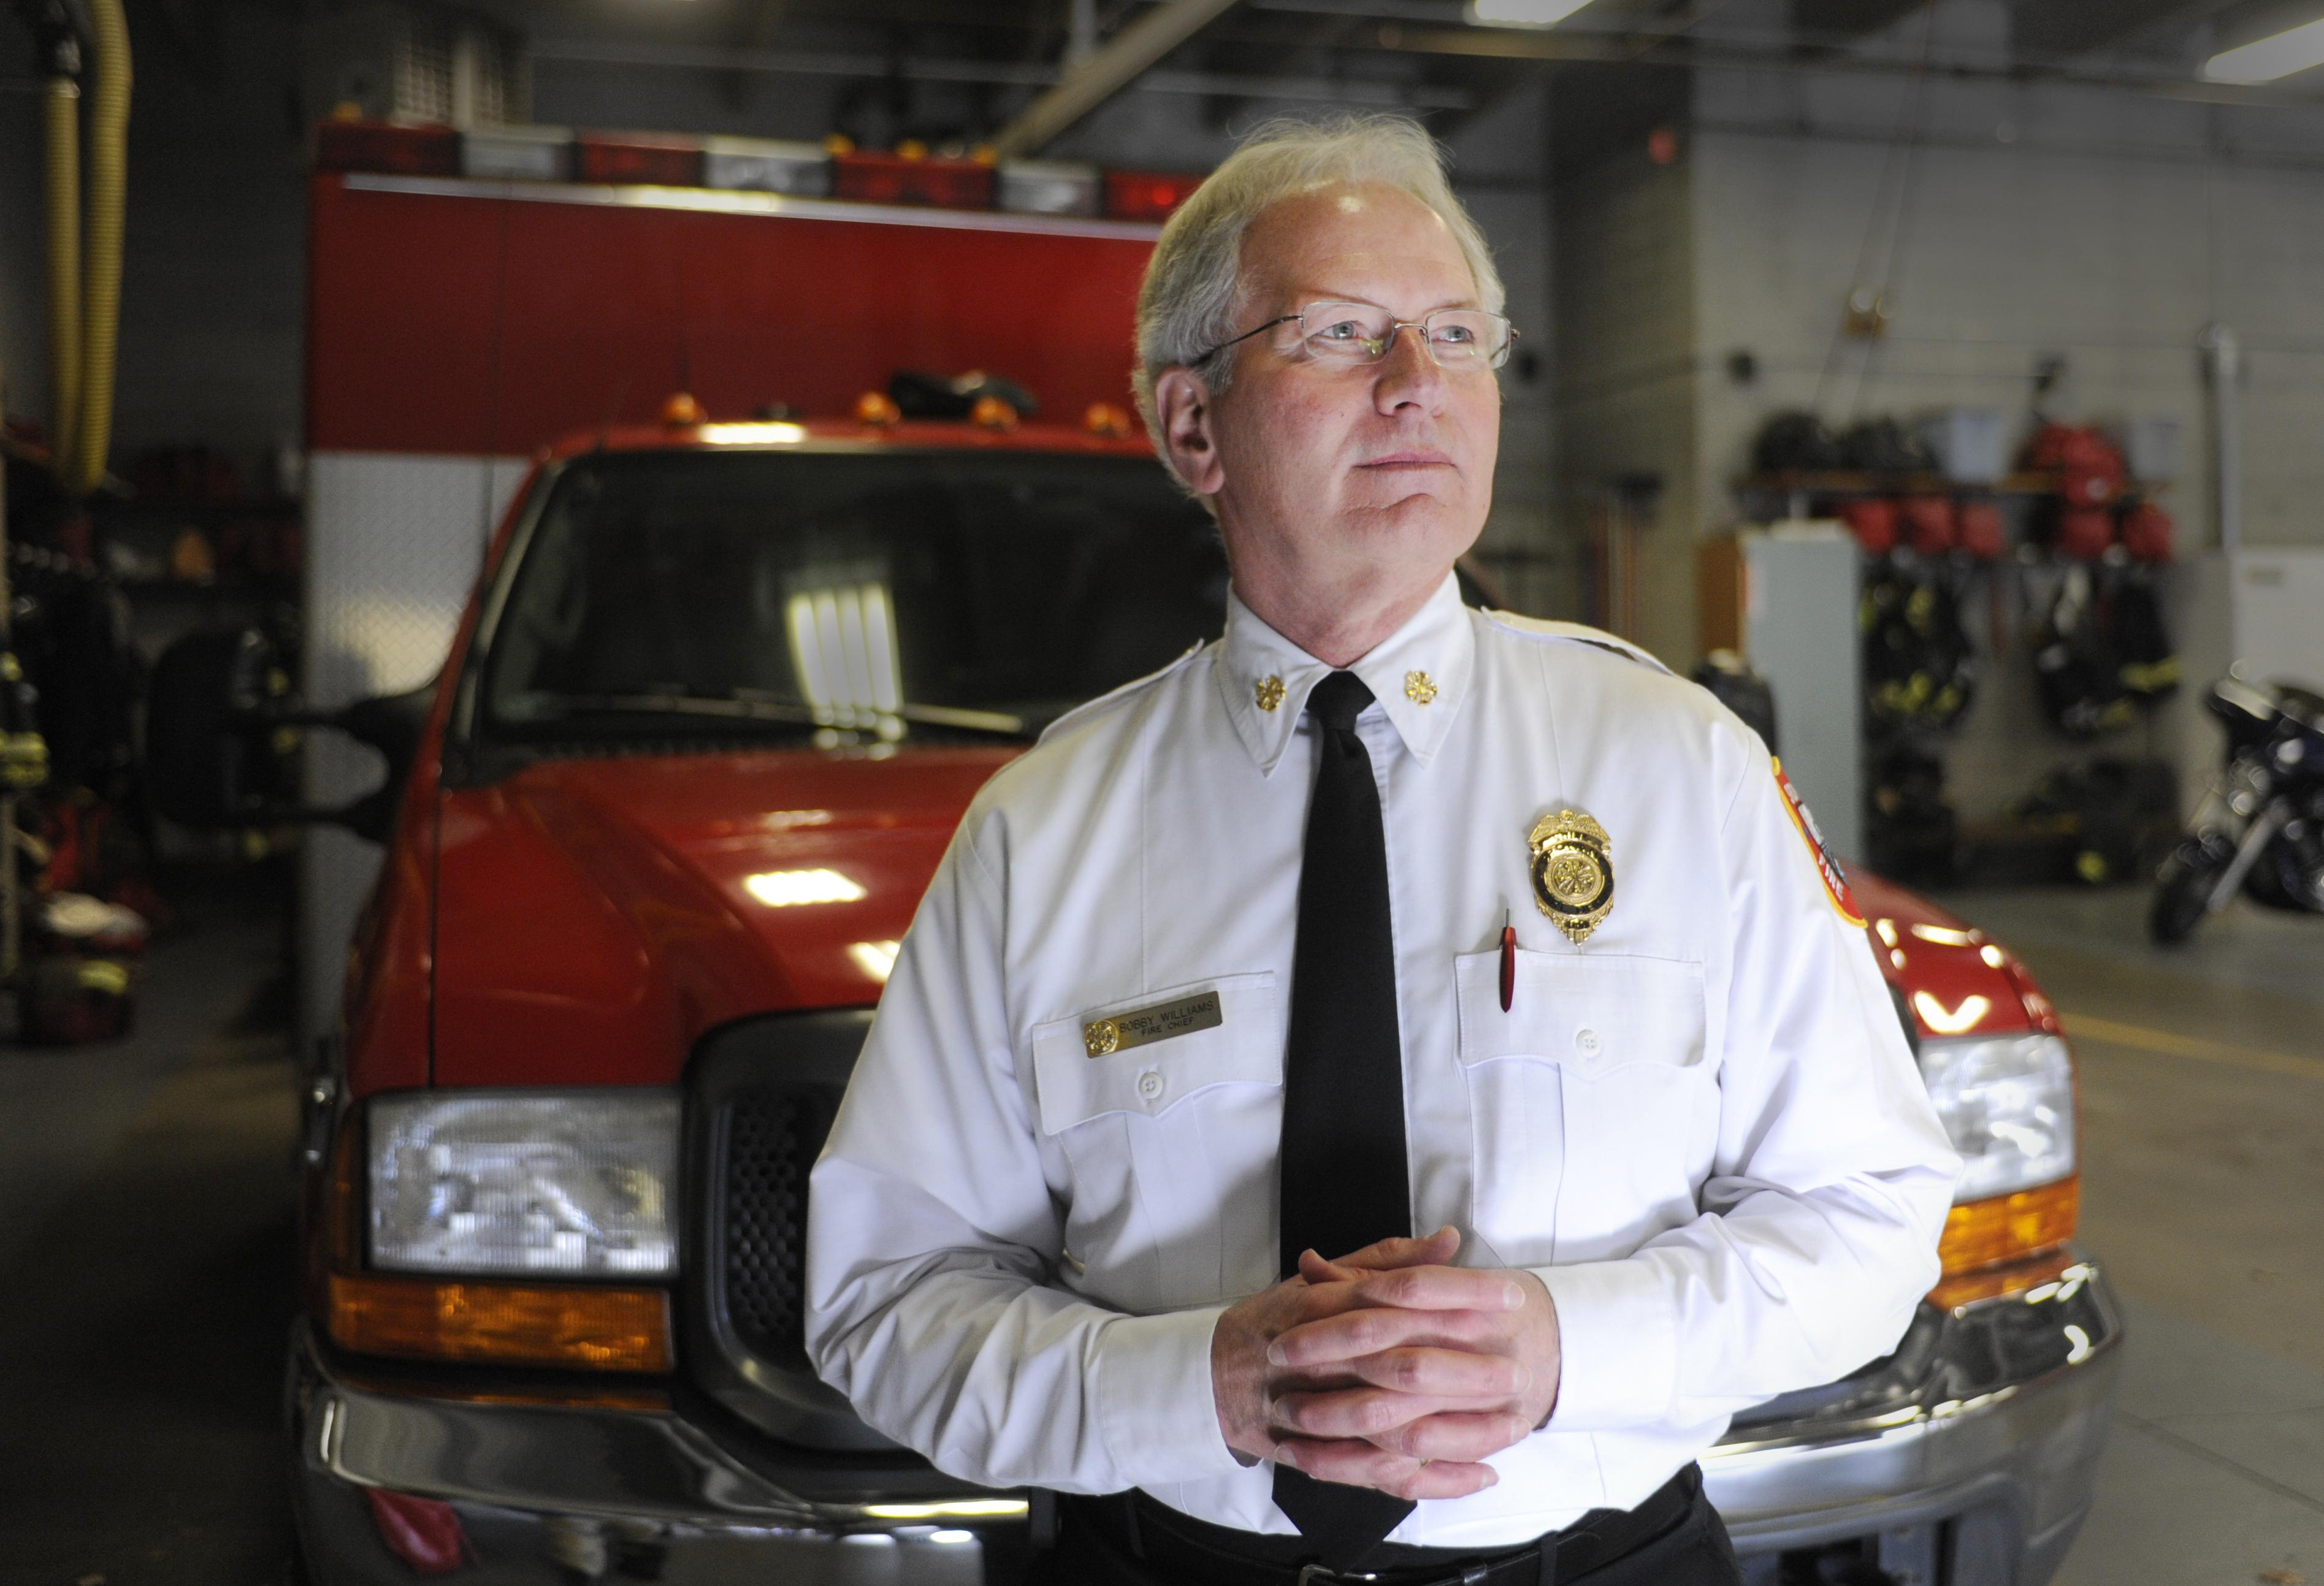 Five finalists named to become next Spokane fire chief | The